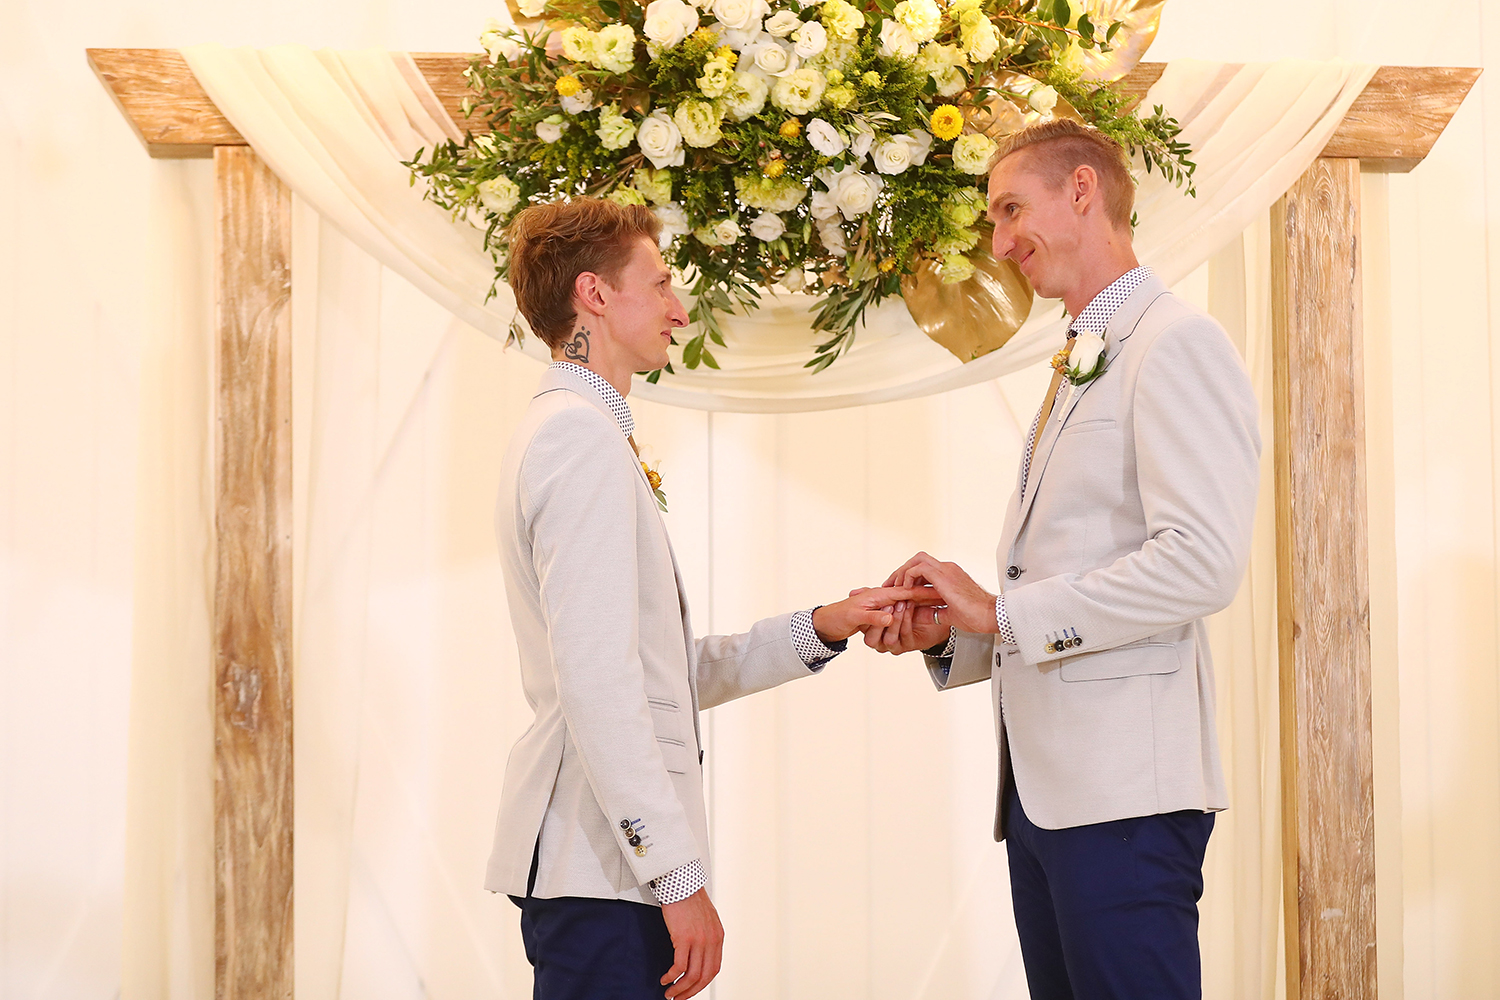 Starting today, gay couples in Australia are marrying